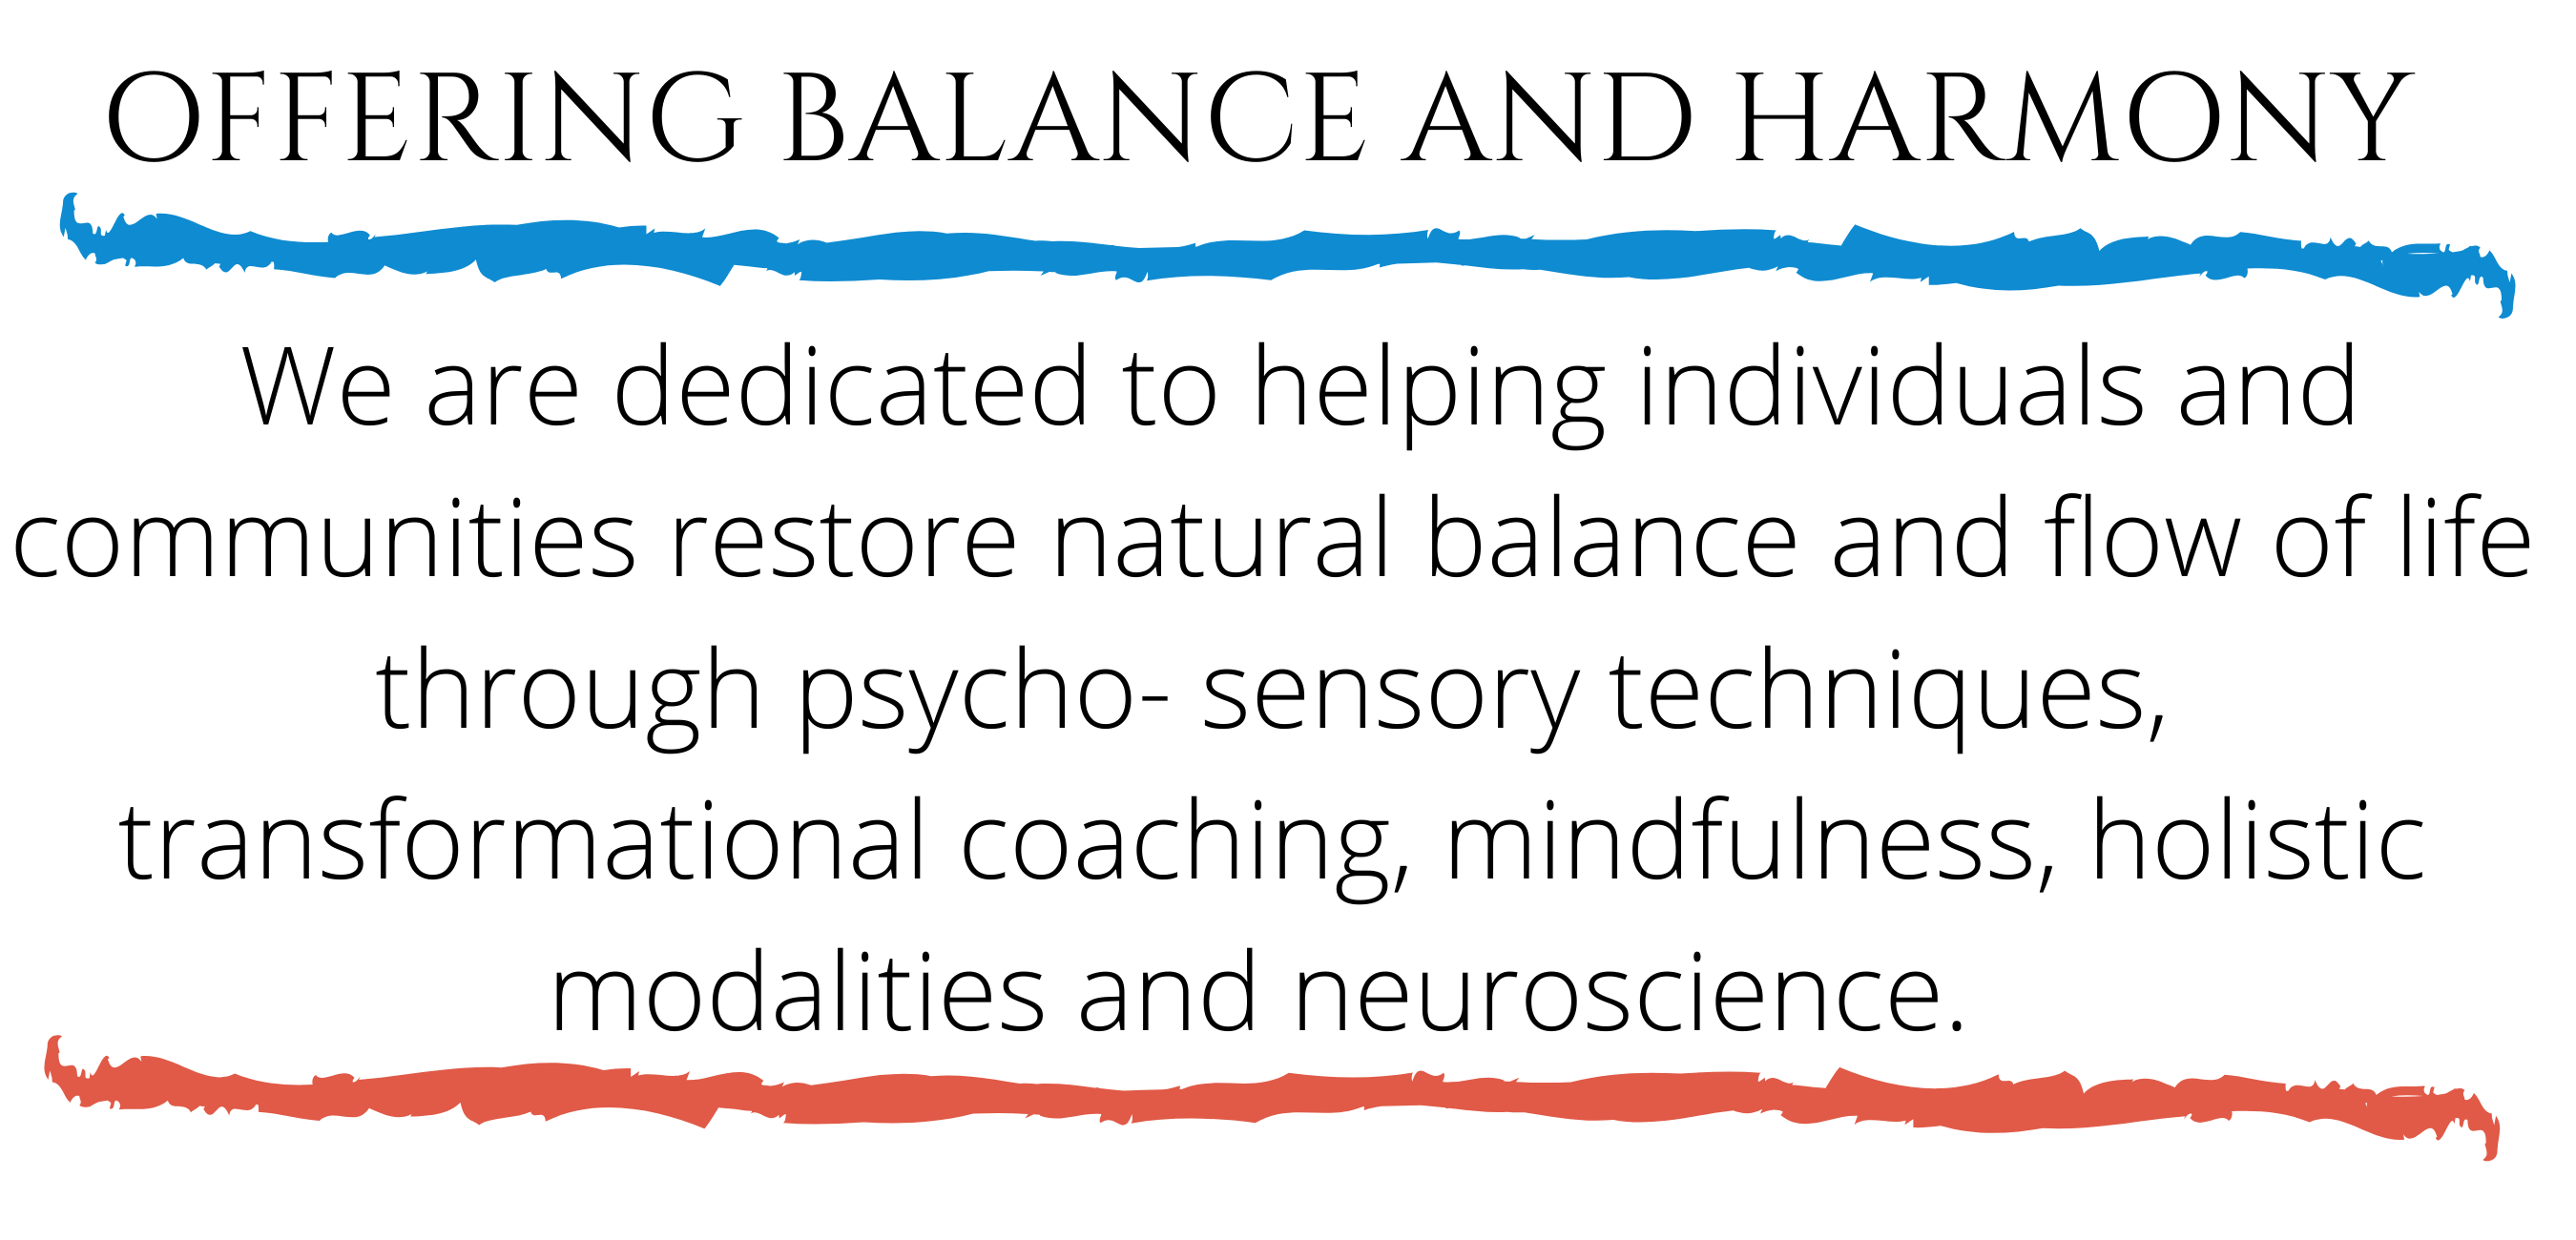 removing-obstacles-to-safety-and-balance-through-psychosensory-techniques-holistic-modalities-and-neurosciences